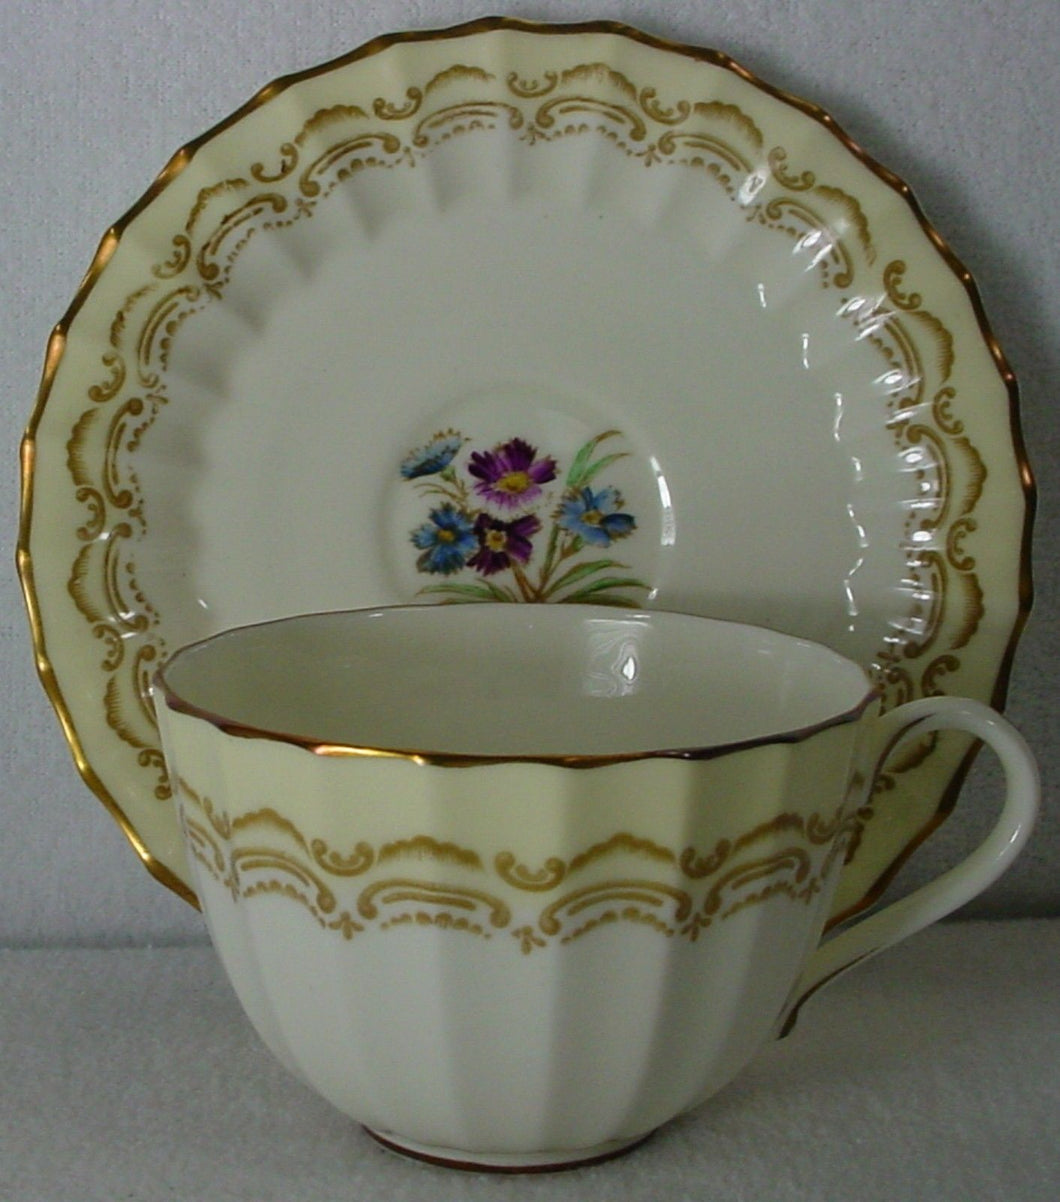 ROYAL WORCESTER china CROMWELL Z1718 pattern CUP & SAUCER Set 2-3/8